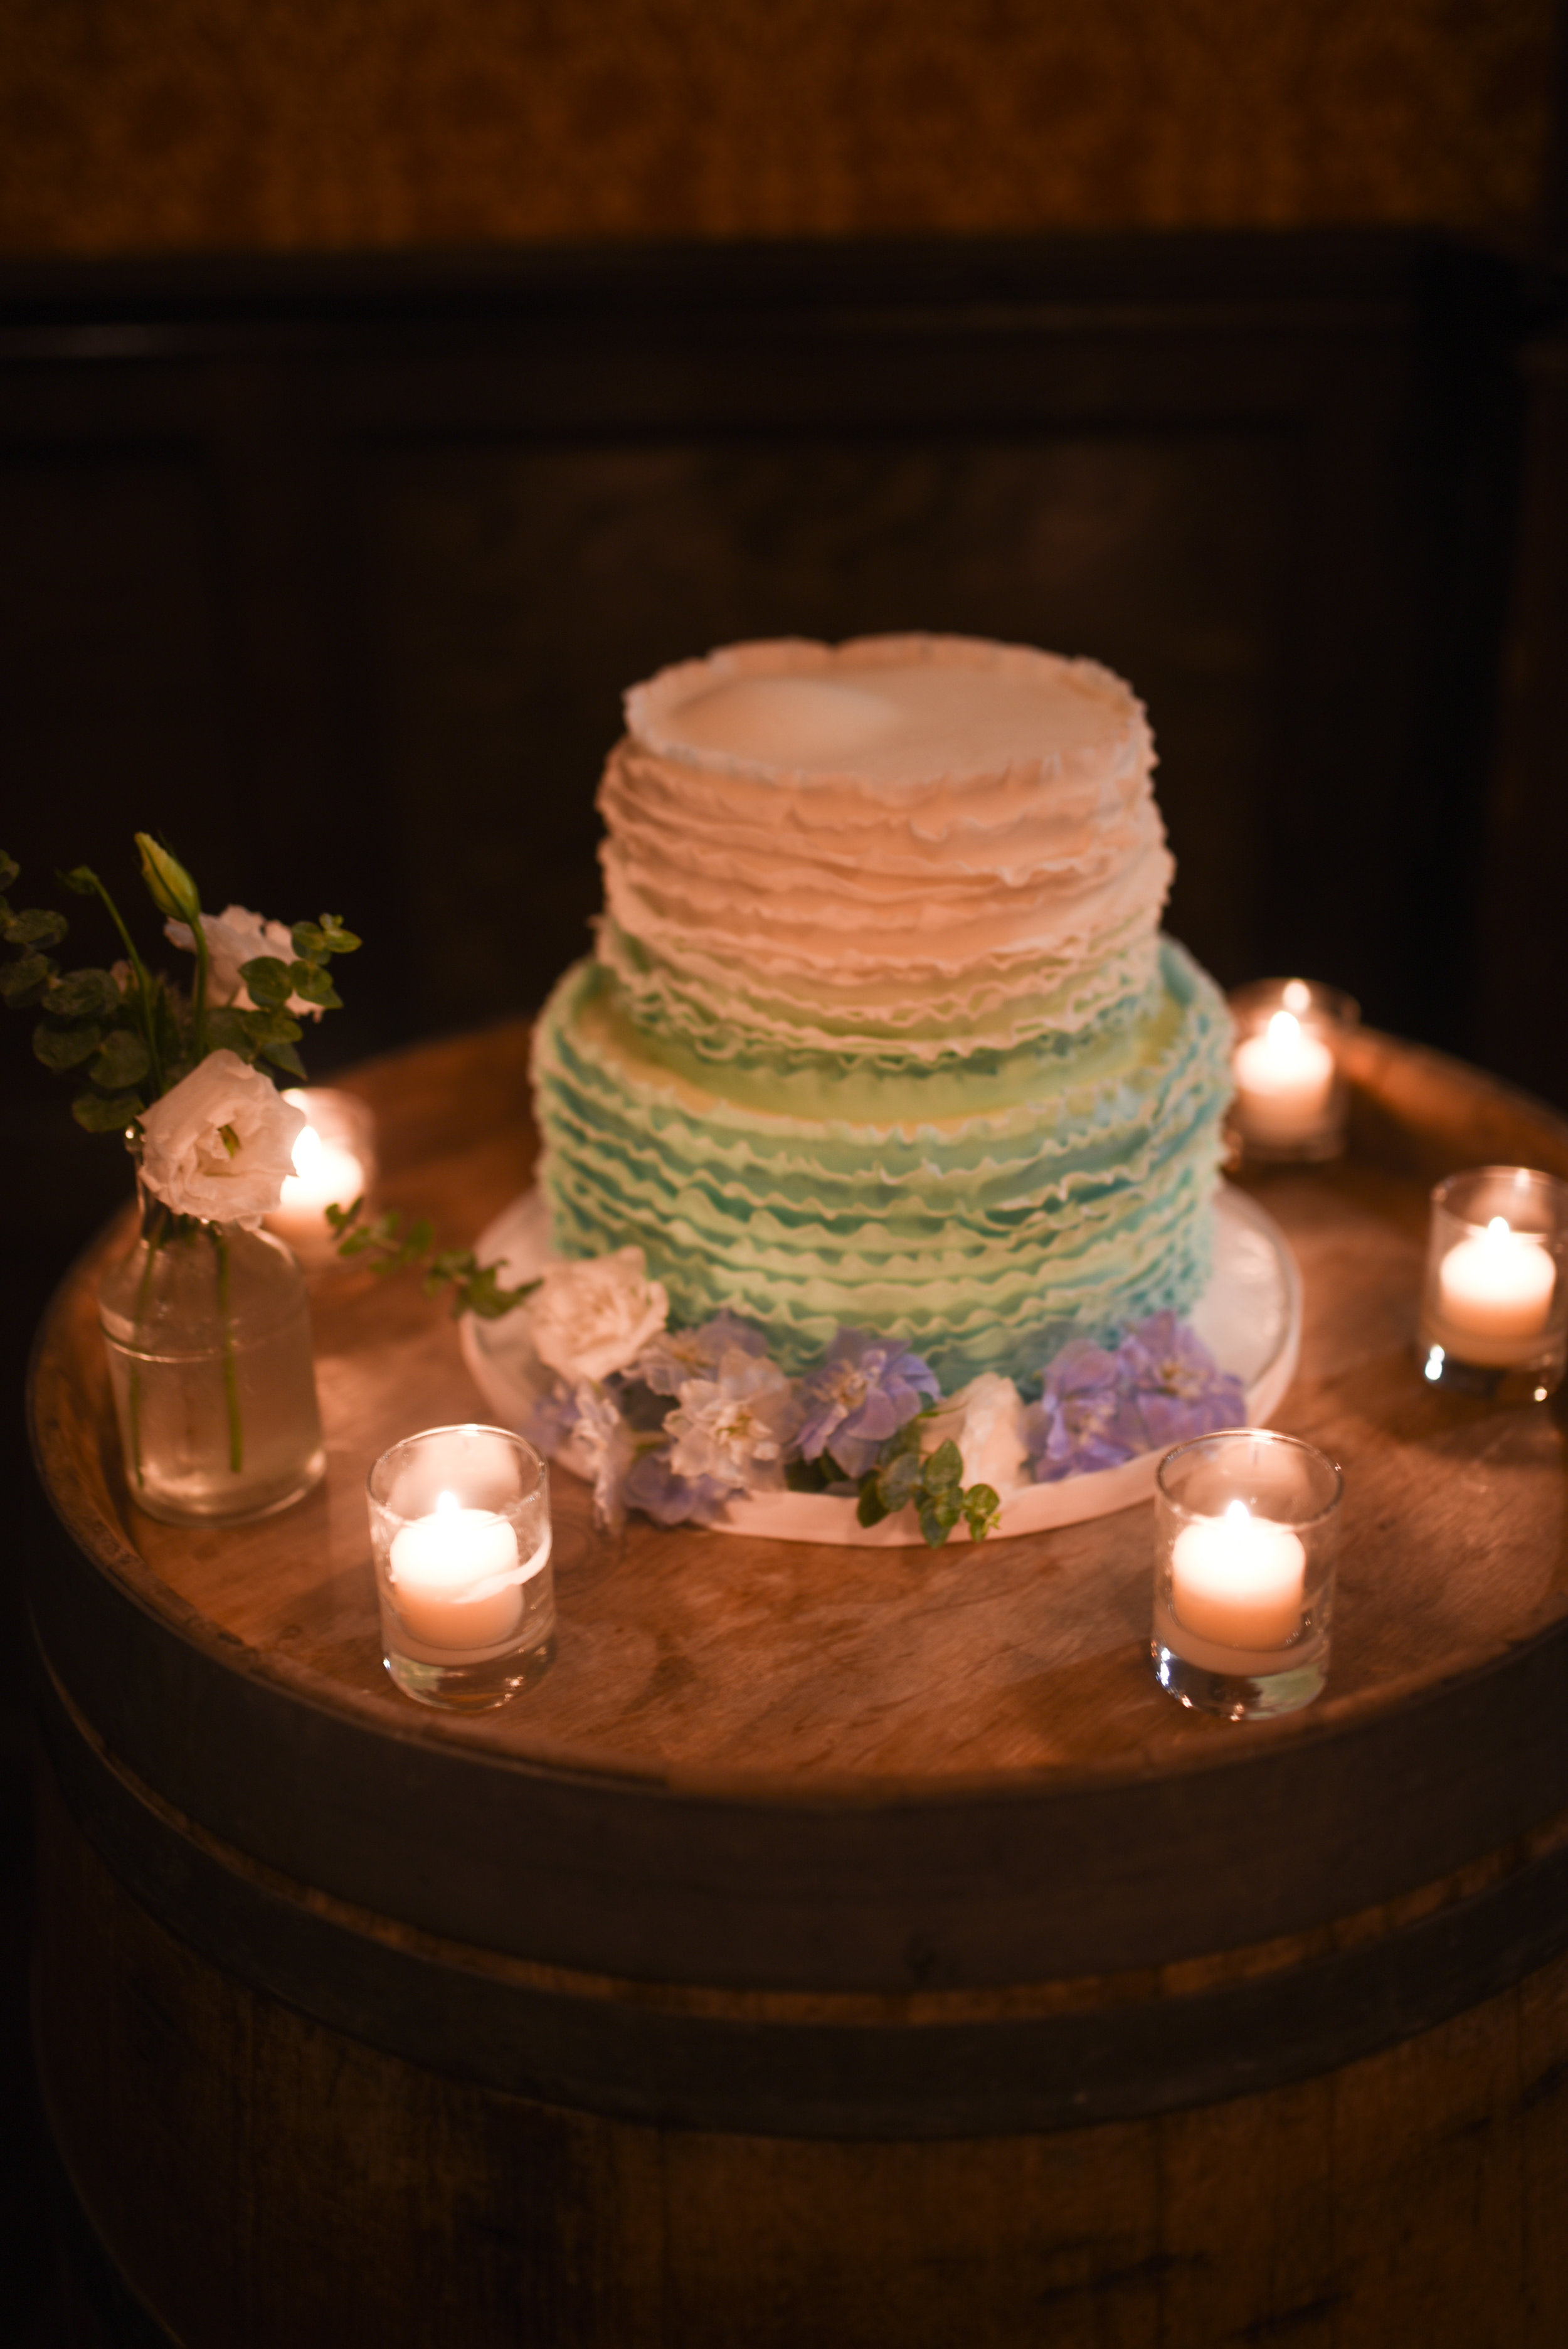 Lovely delphiniums pair with this elegant and feminine wedding cake